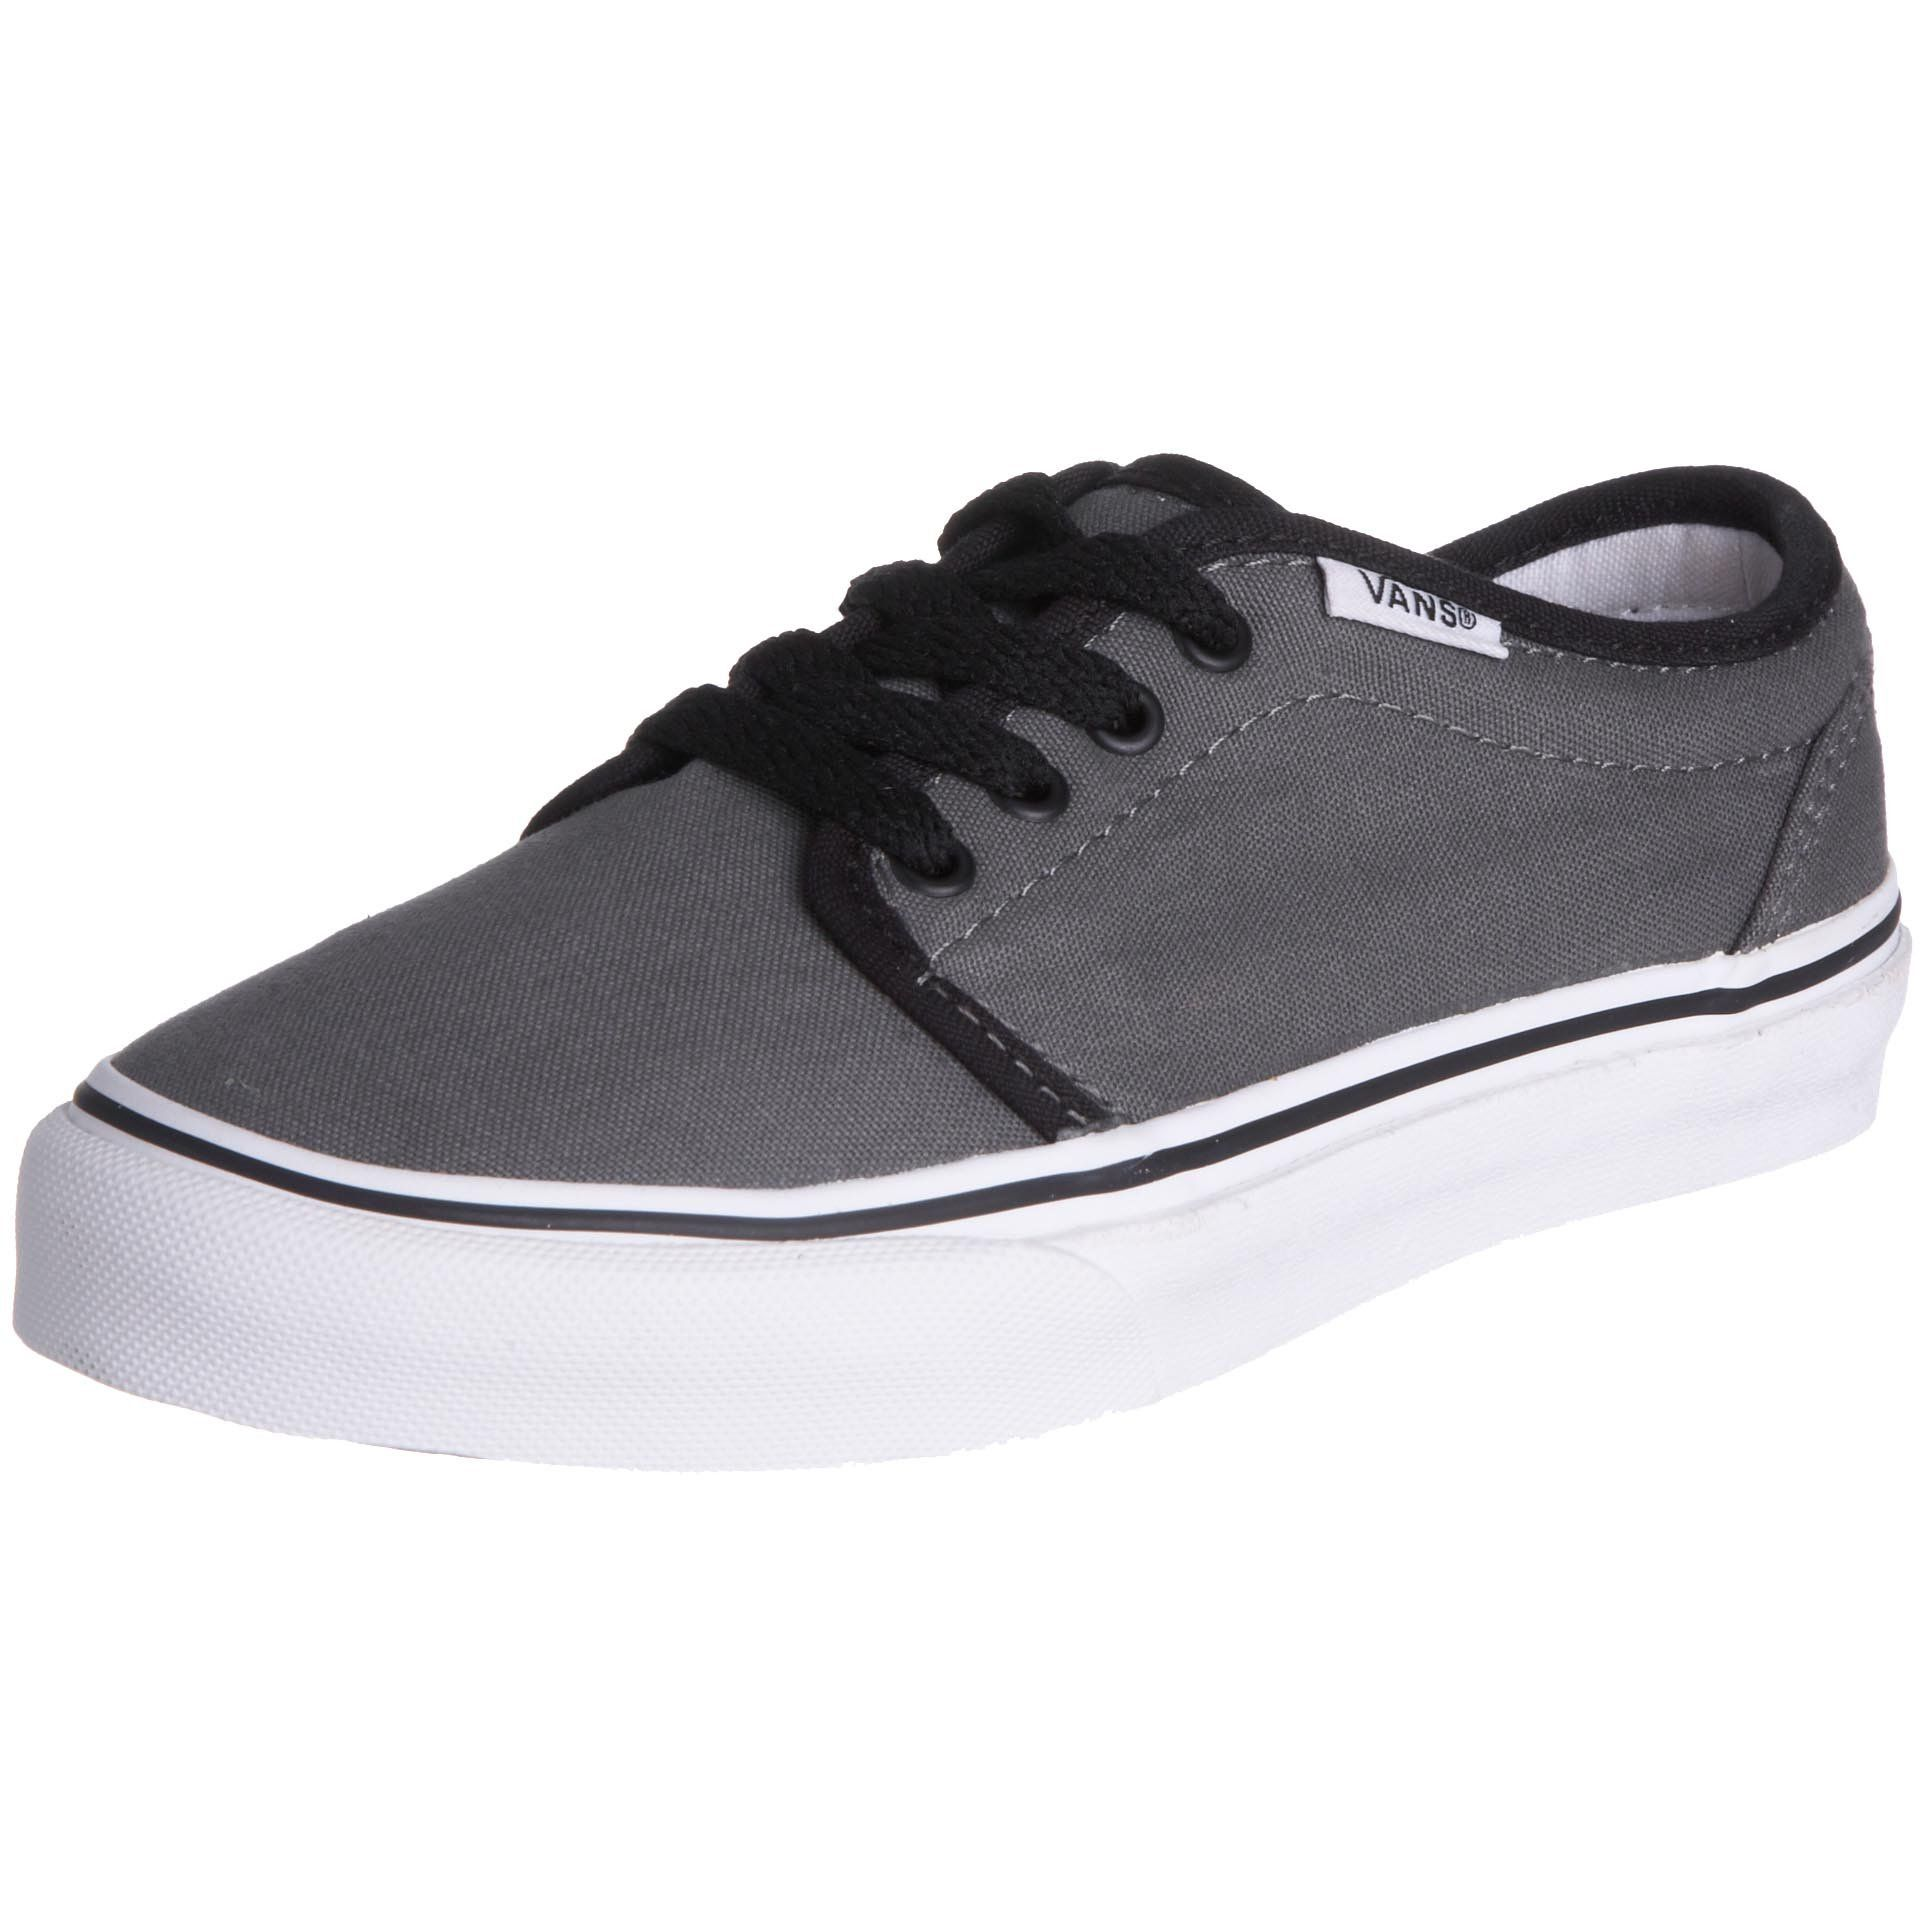 Vans Boys 106 Vulcanized Pewter/Black11 Toddler >>> Check out this great  product